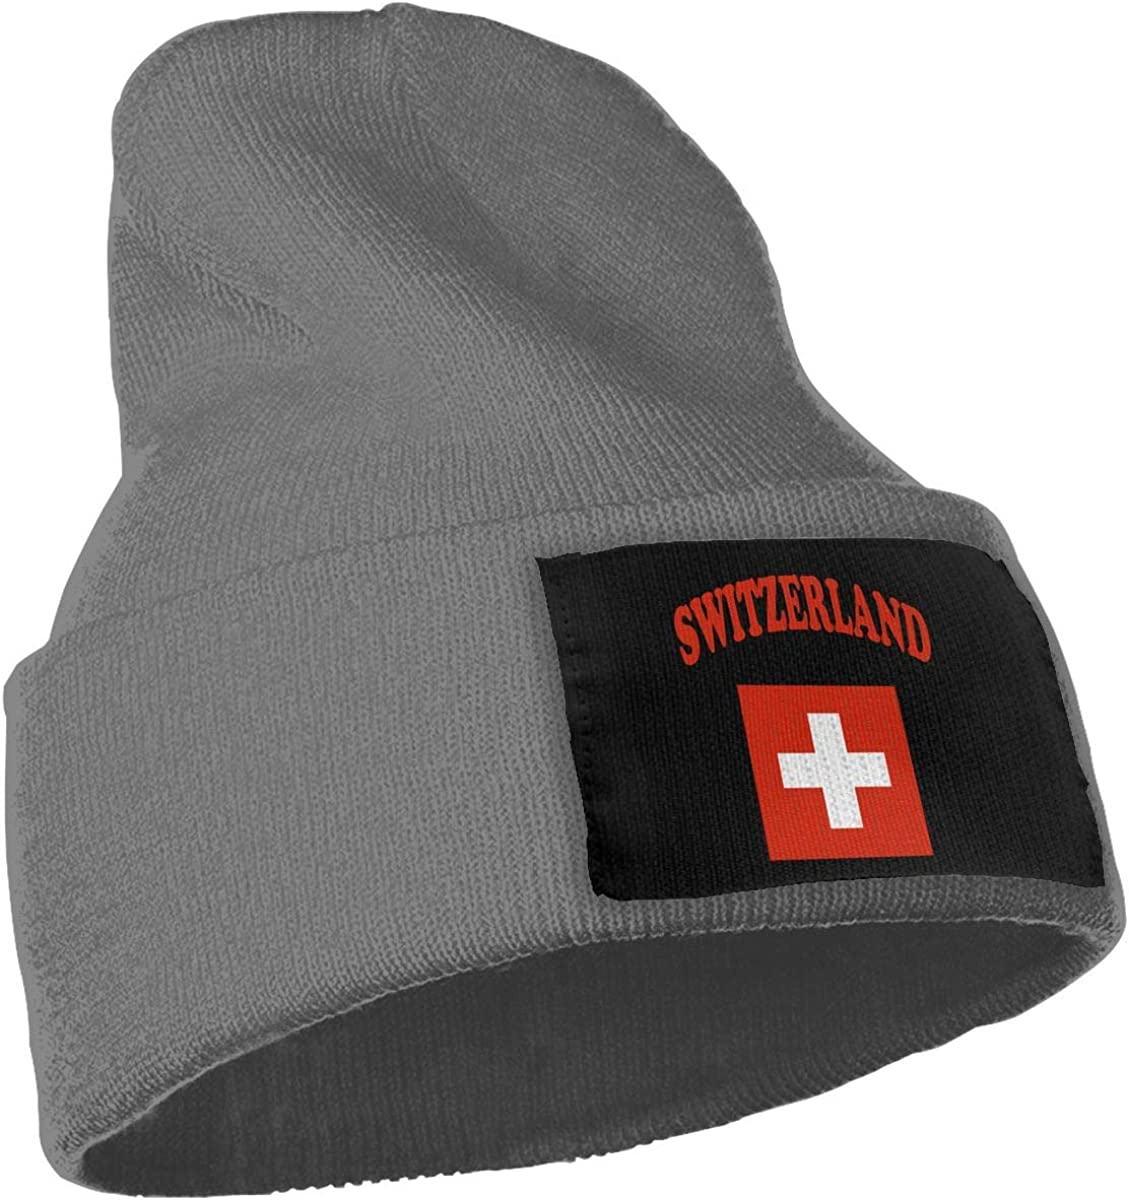 COLLJL-8 Men//Women Switzerland Flag Outdoor Fashion Knit Beanies Hat Soft Winter Skull Caps